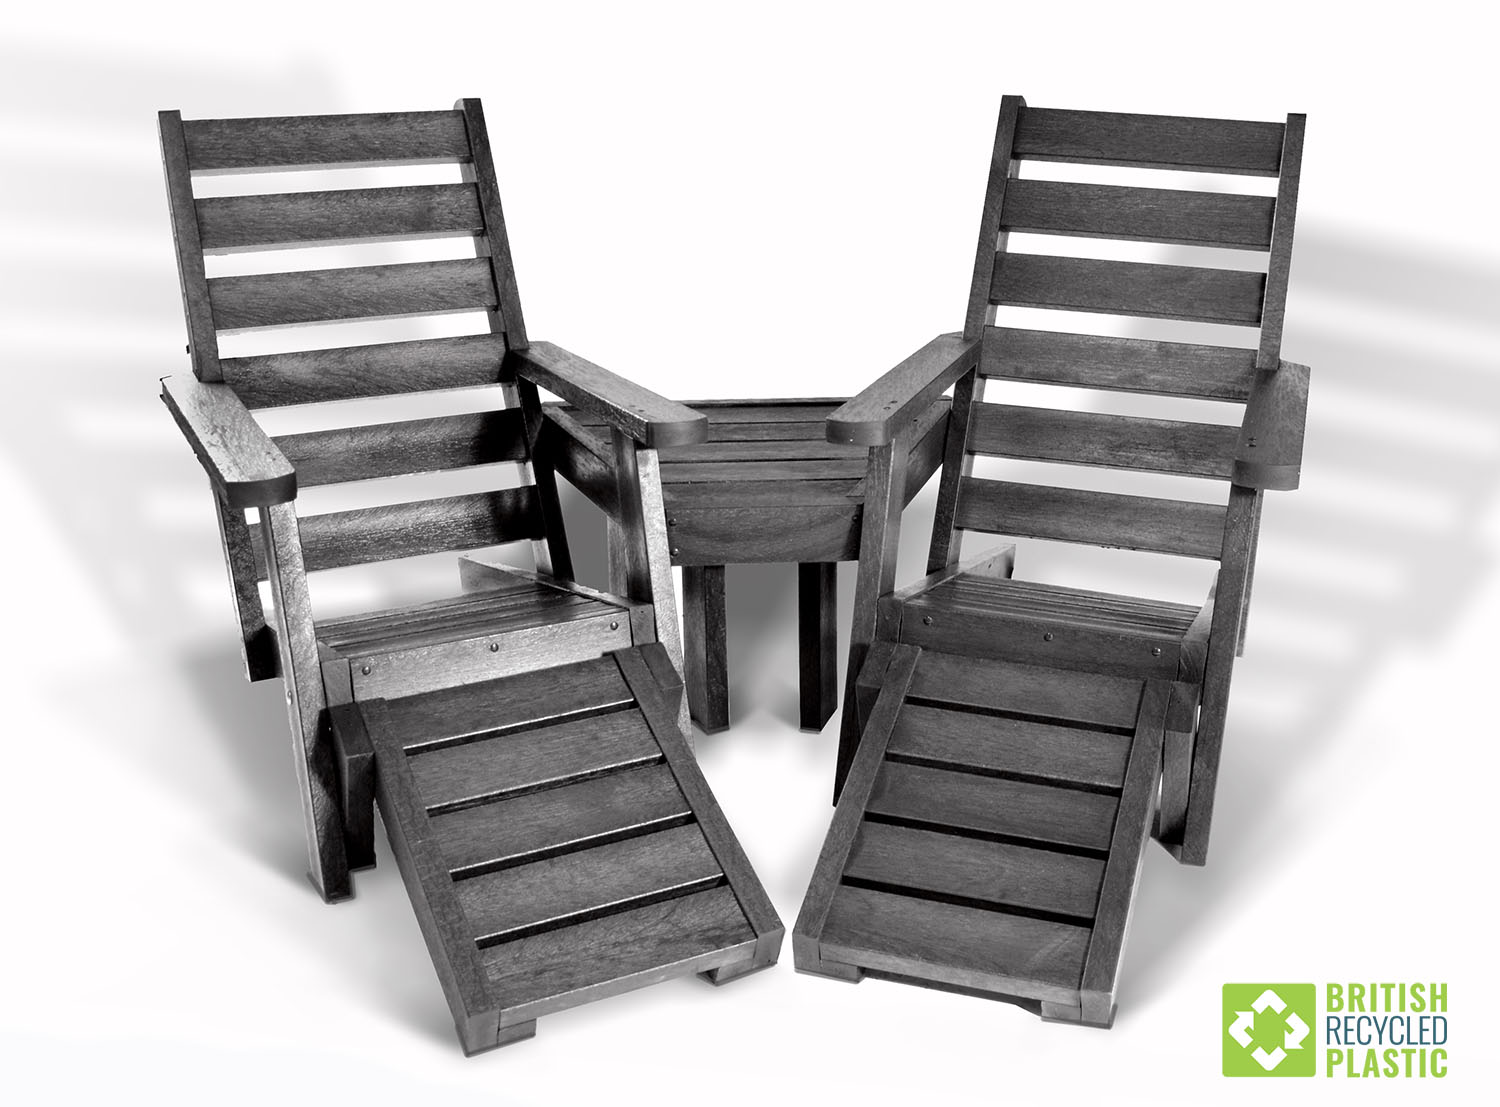 The Rosedale Lounger Set, made from British Recycled Plastic with a 25 year guarantee